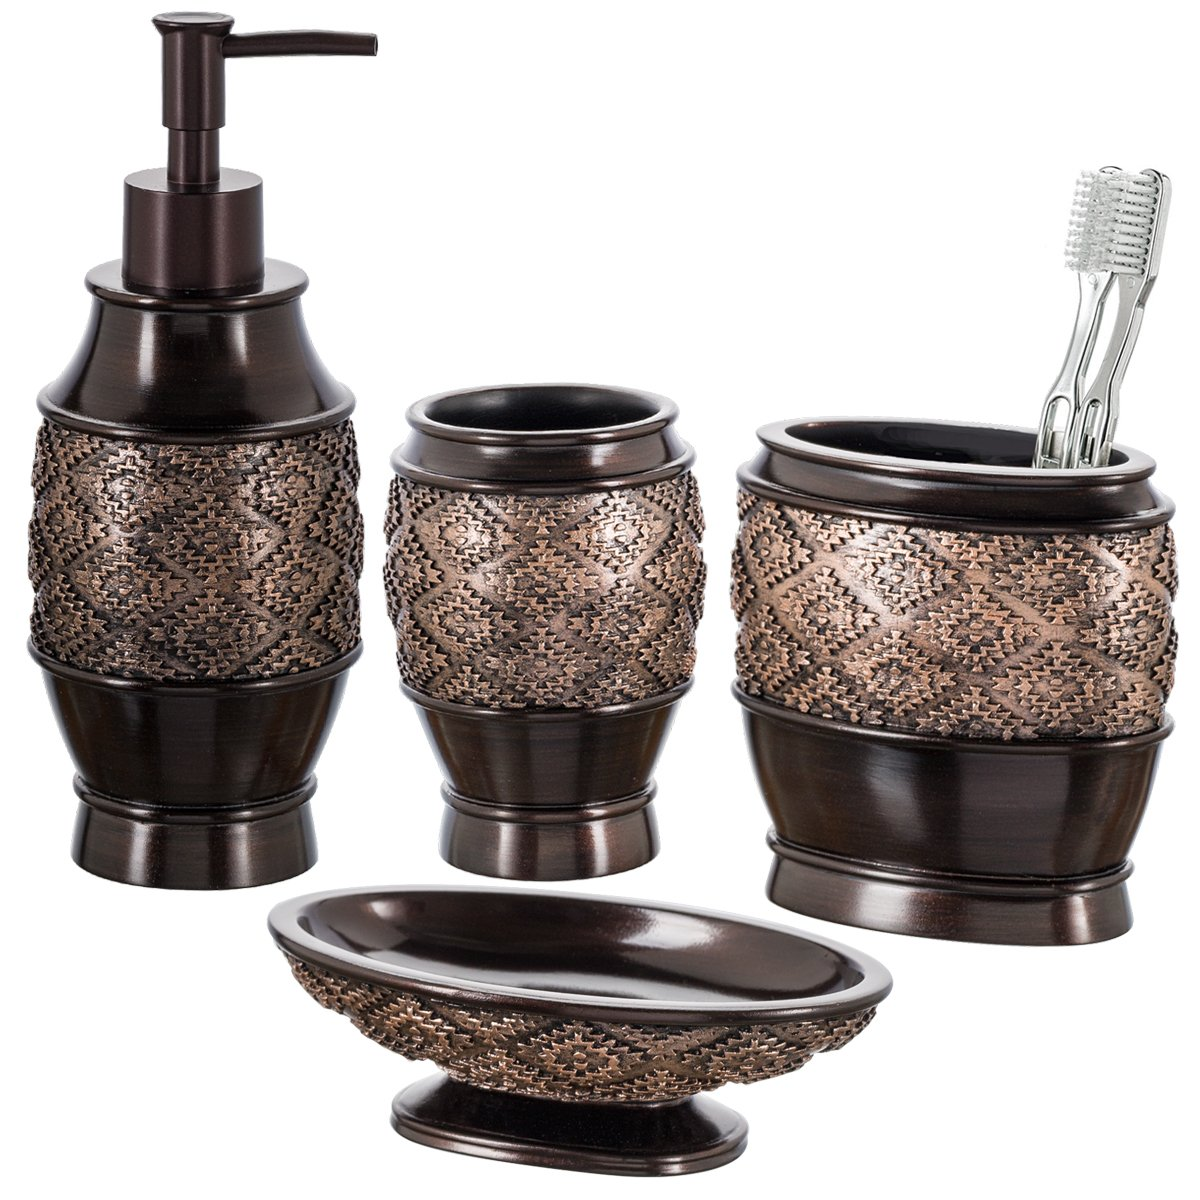 Resin Vanity Ensemble Set Dish Includes Decorative Countertop Soap Dispenser Tumbler ORS-44554 Toothbrush Holder Brown Creative Scents Dublin 4-Piece Bathroom Accessories Set Gift Boxed